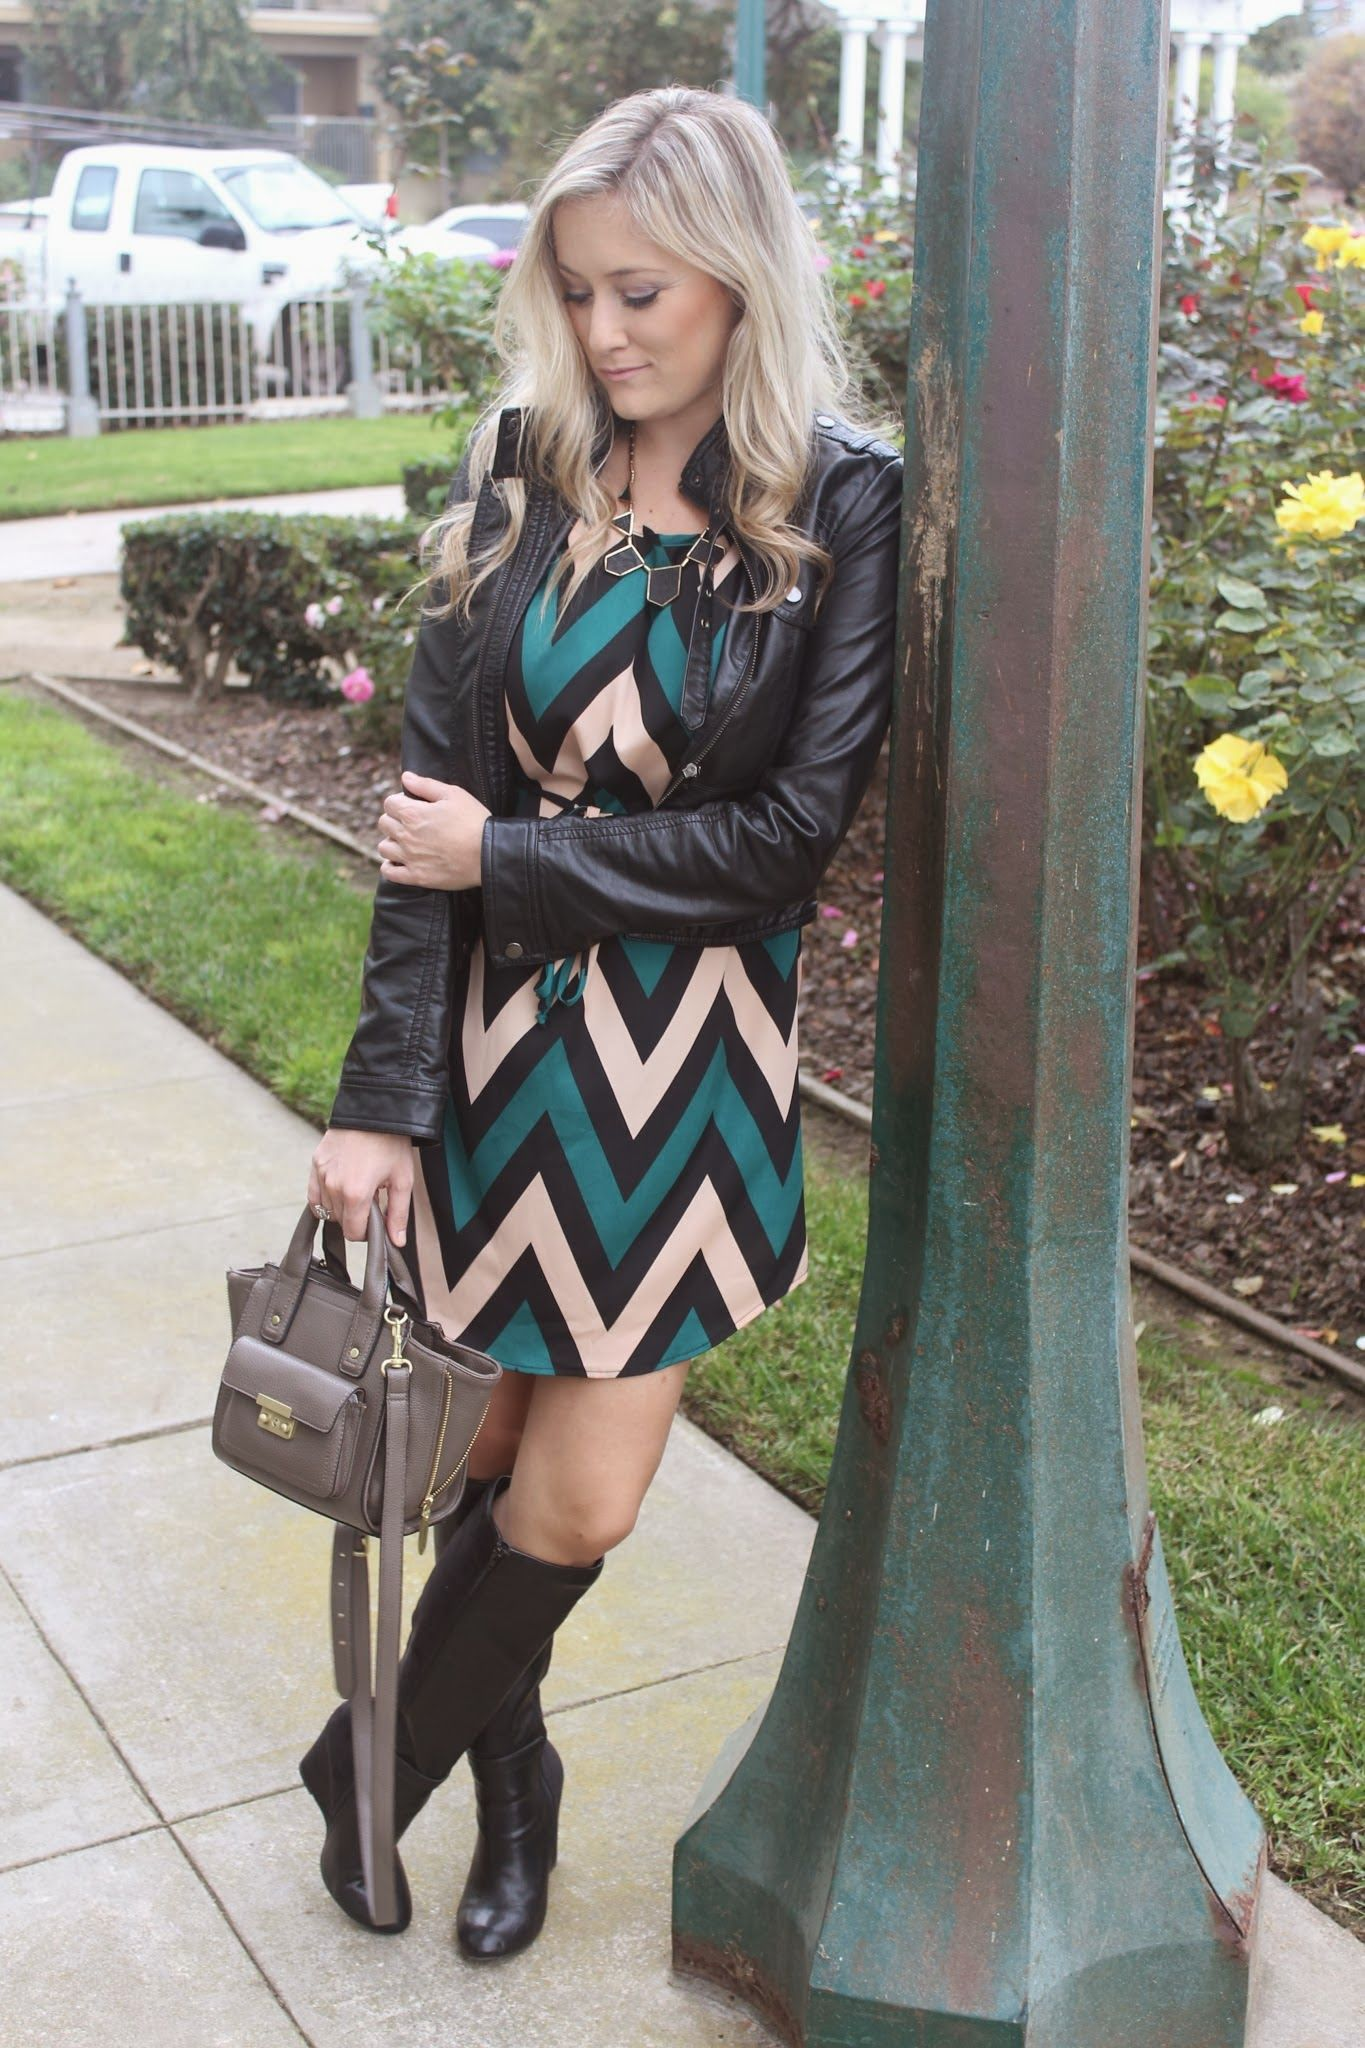 She Said He Said: Woven Chevron Shift Dress, @Charlotte Willner Russe #chevron, #fashion, #blogger, #dress, #fall, #winter, #black, #leather, @FOREVER.com 21, #layers, #boots, #wedge, #gold, #OOTD, #philliplimfortarget